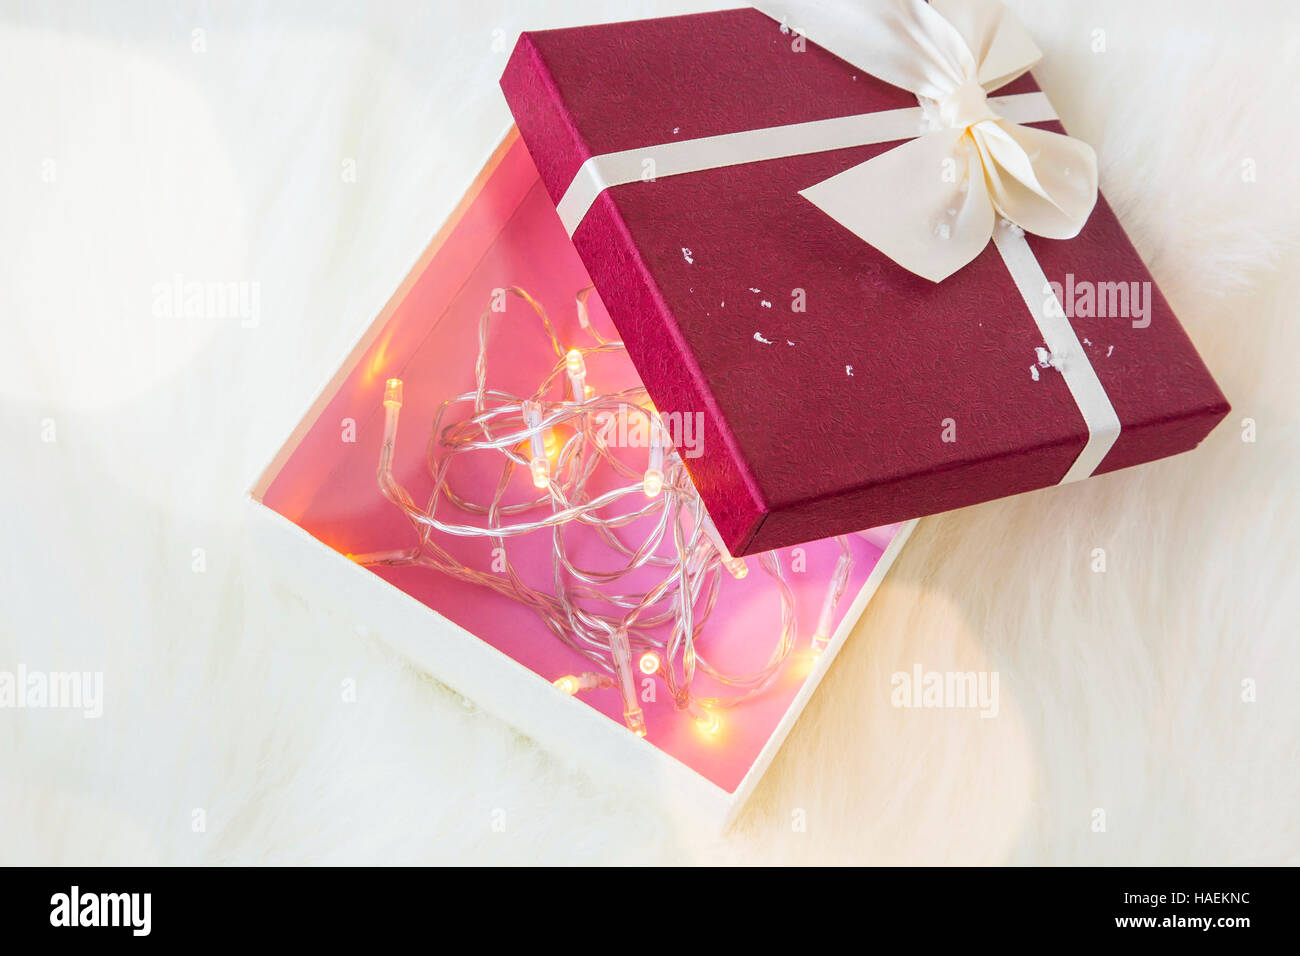 festive christmas gift box decorated with tree lights inside